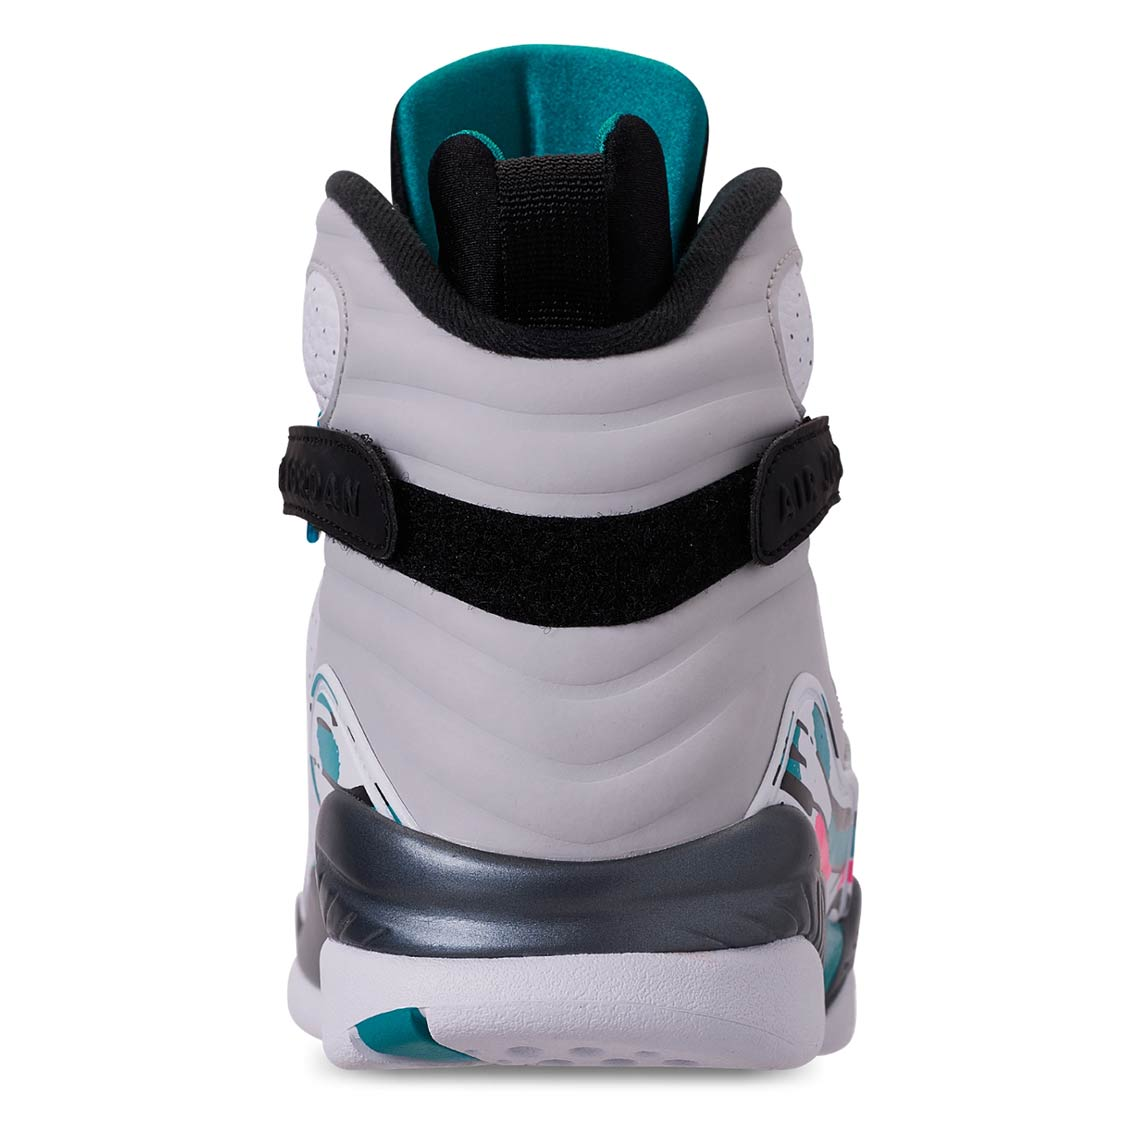 air jordan 8 south beach release date 4 - Air Jordan 8 South Beach Release Date